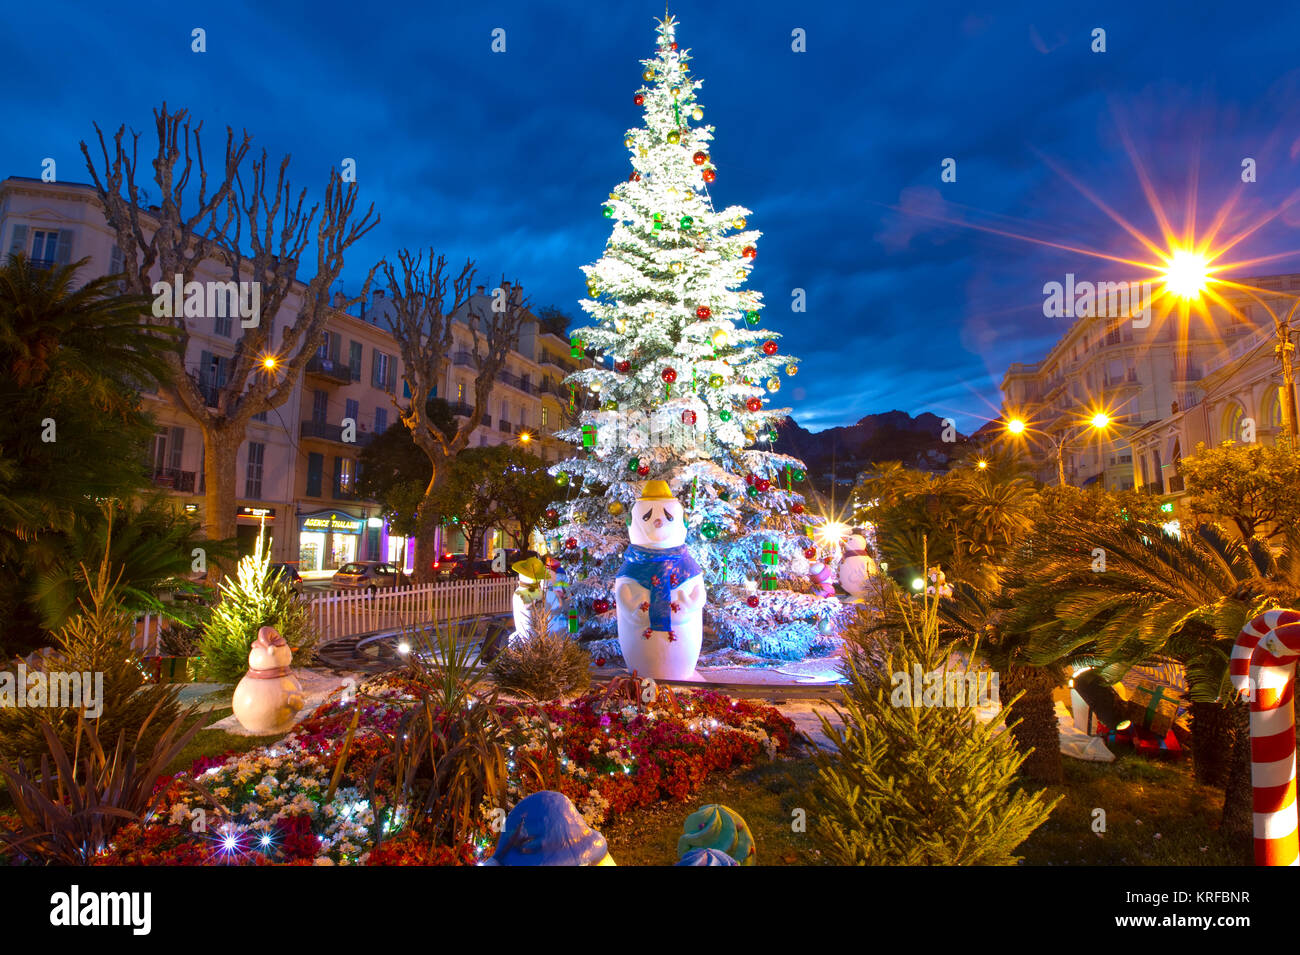 Menton, France. 19th Dec, 2017. Menton, France - December 19, 2017 ...